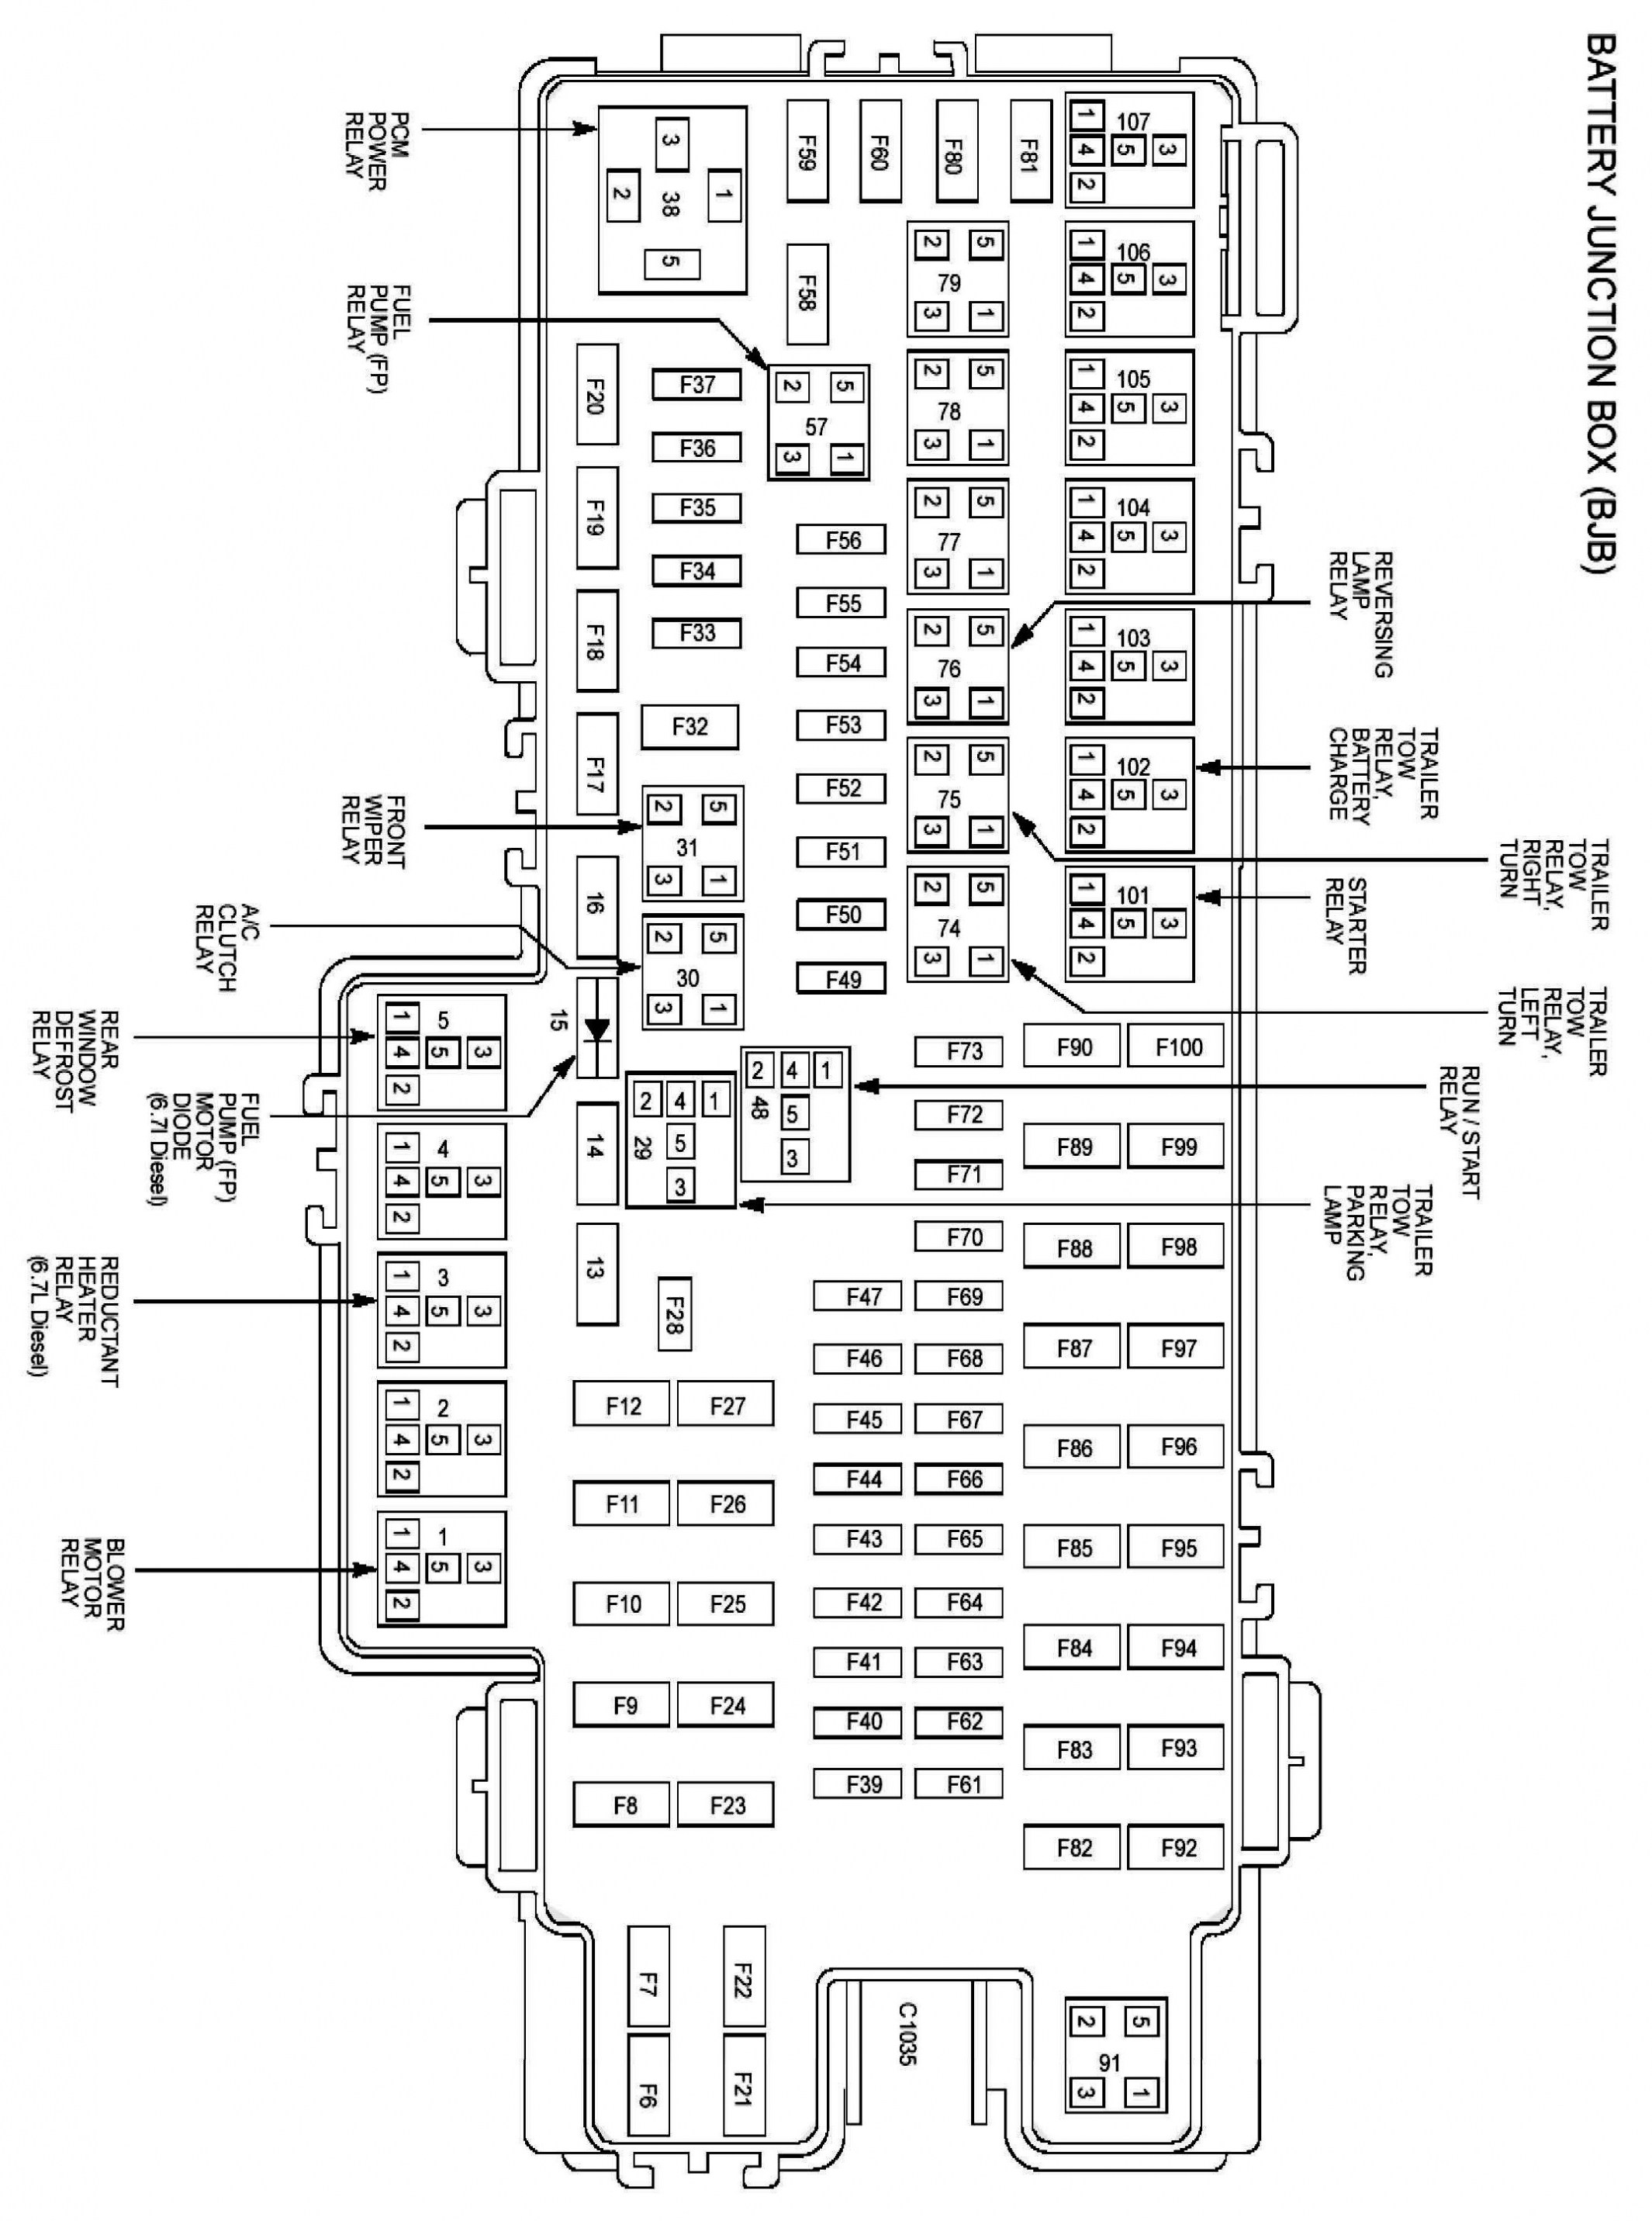 2013 ford f 350 fuse box diagram - wiring diagrams drain-manage -  drain-manage.alcuoredeldiabete.it  al cuore del diabete